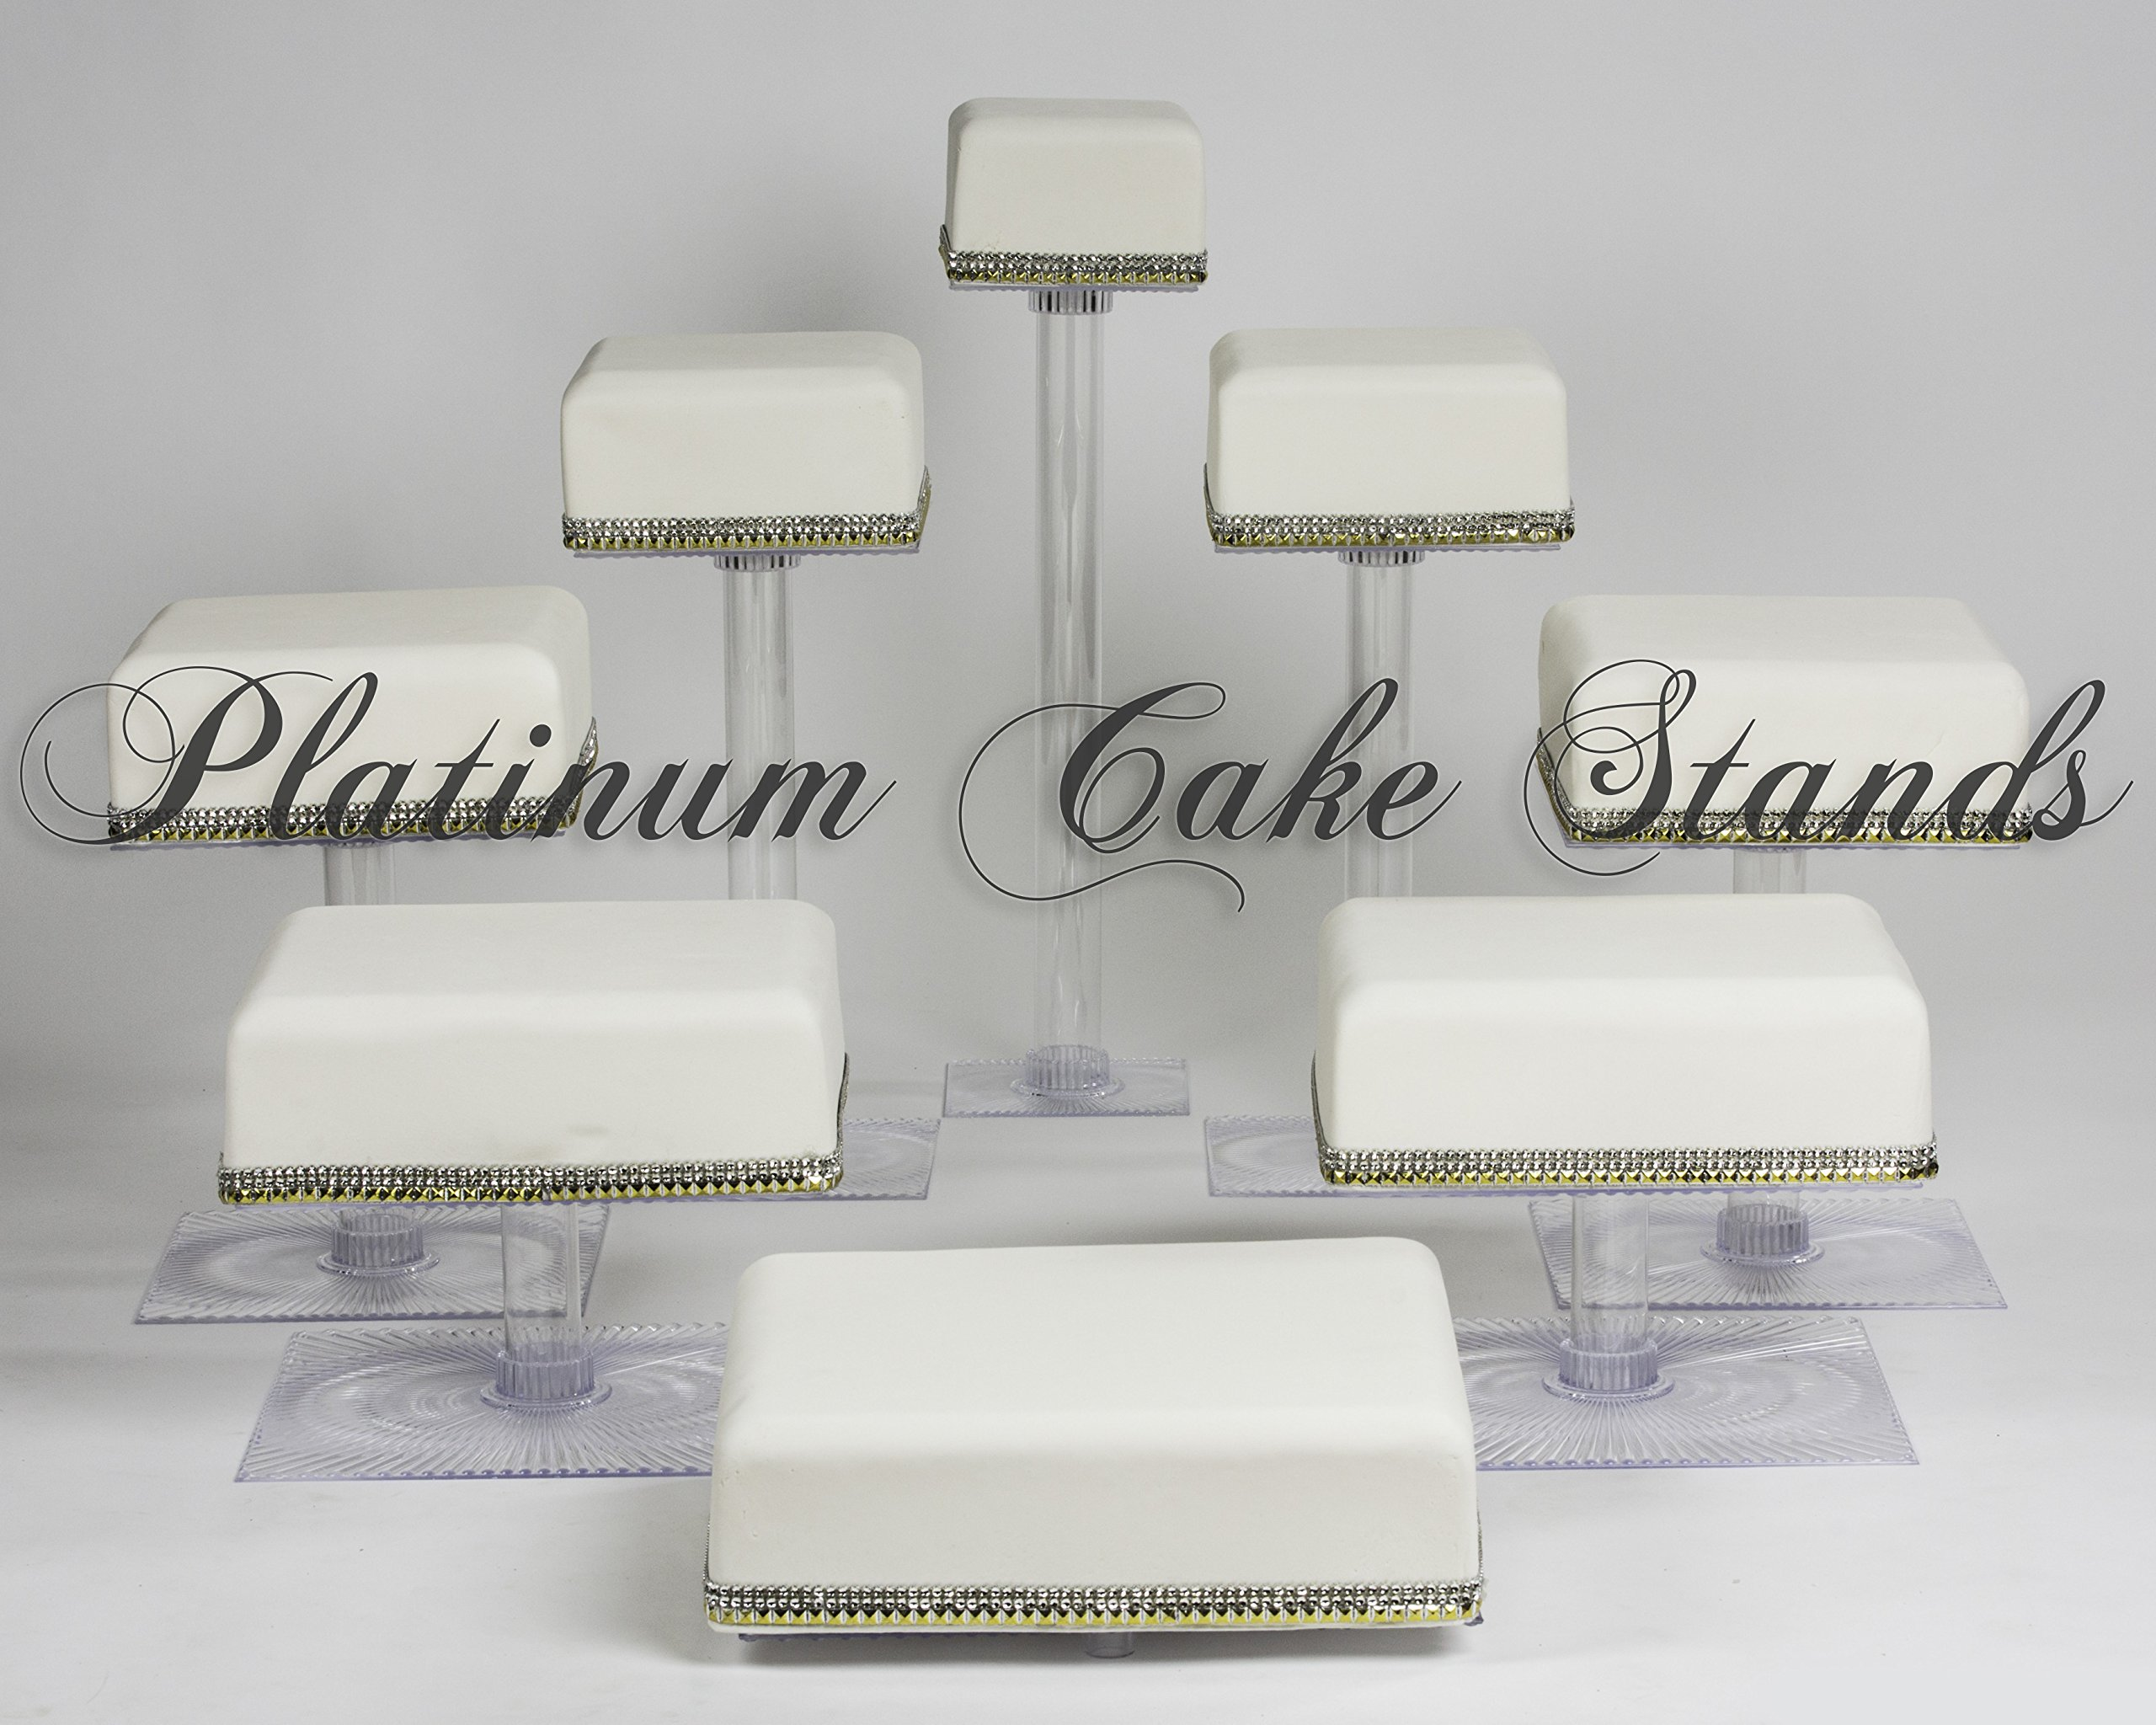 8 TIER CASCADE WEDDING CAKE CUPCAKE STAND SQUARE (STYLE SQ845) by platinumcakeware (Image #1)